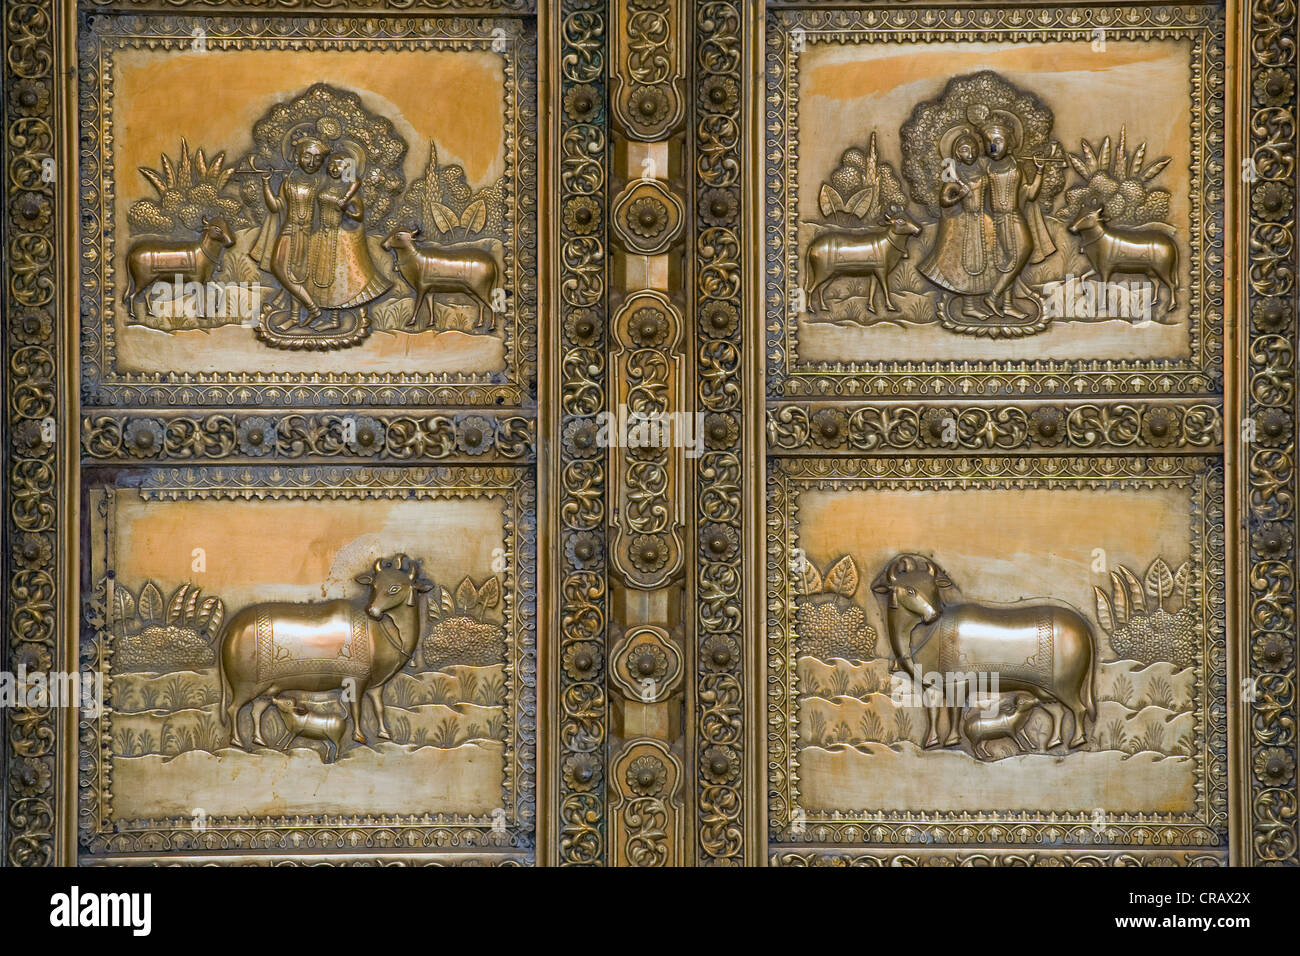 Door decoration with depictions of Krishna and Radha, City Palace, Jaipur, Rajasthan, India, Asia - Stock Image